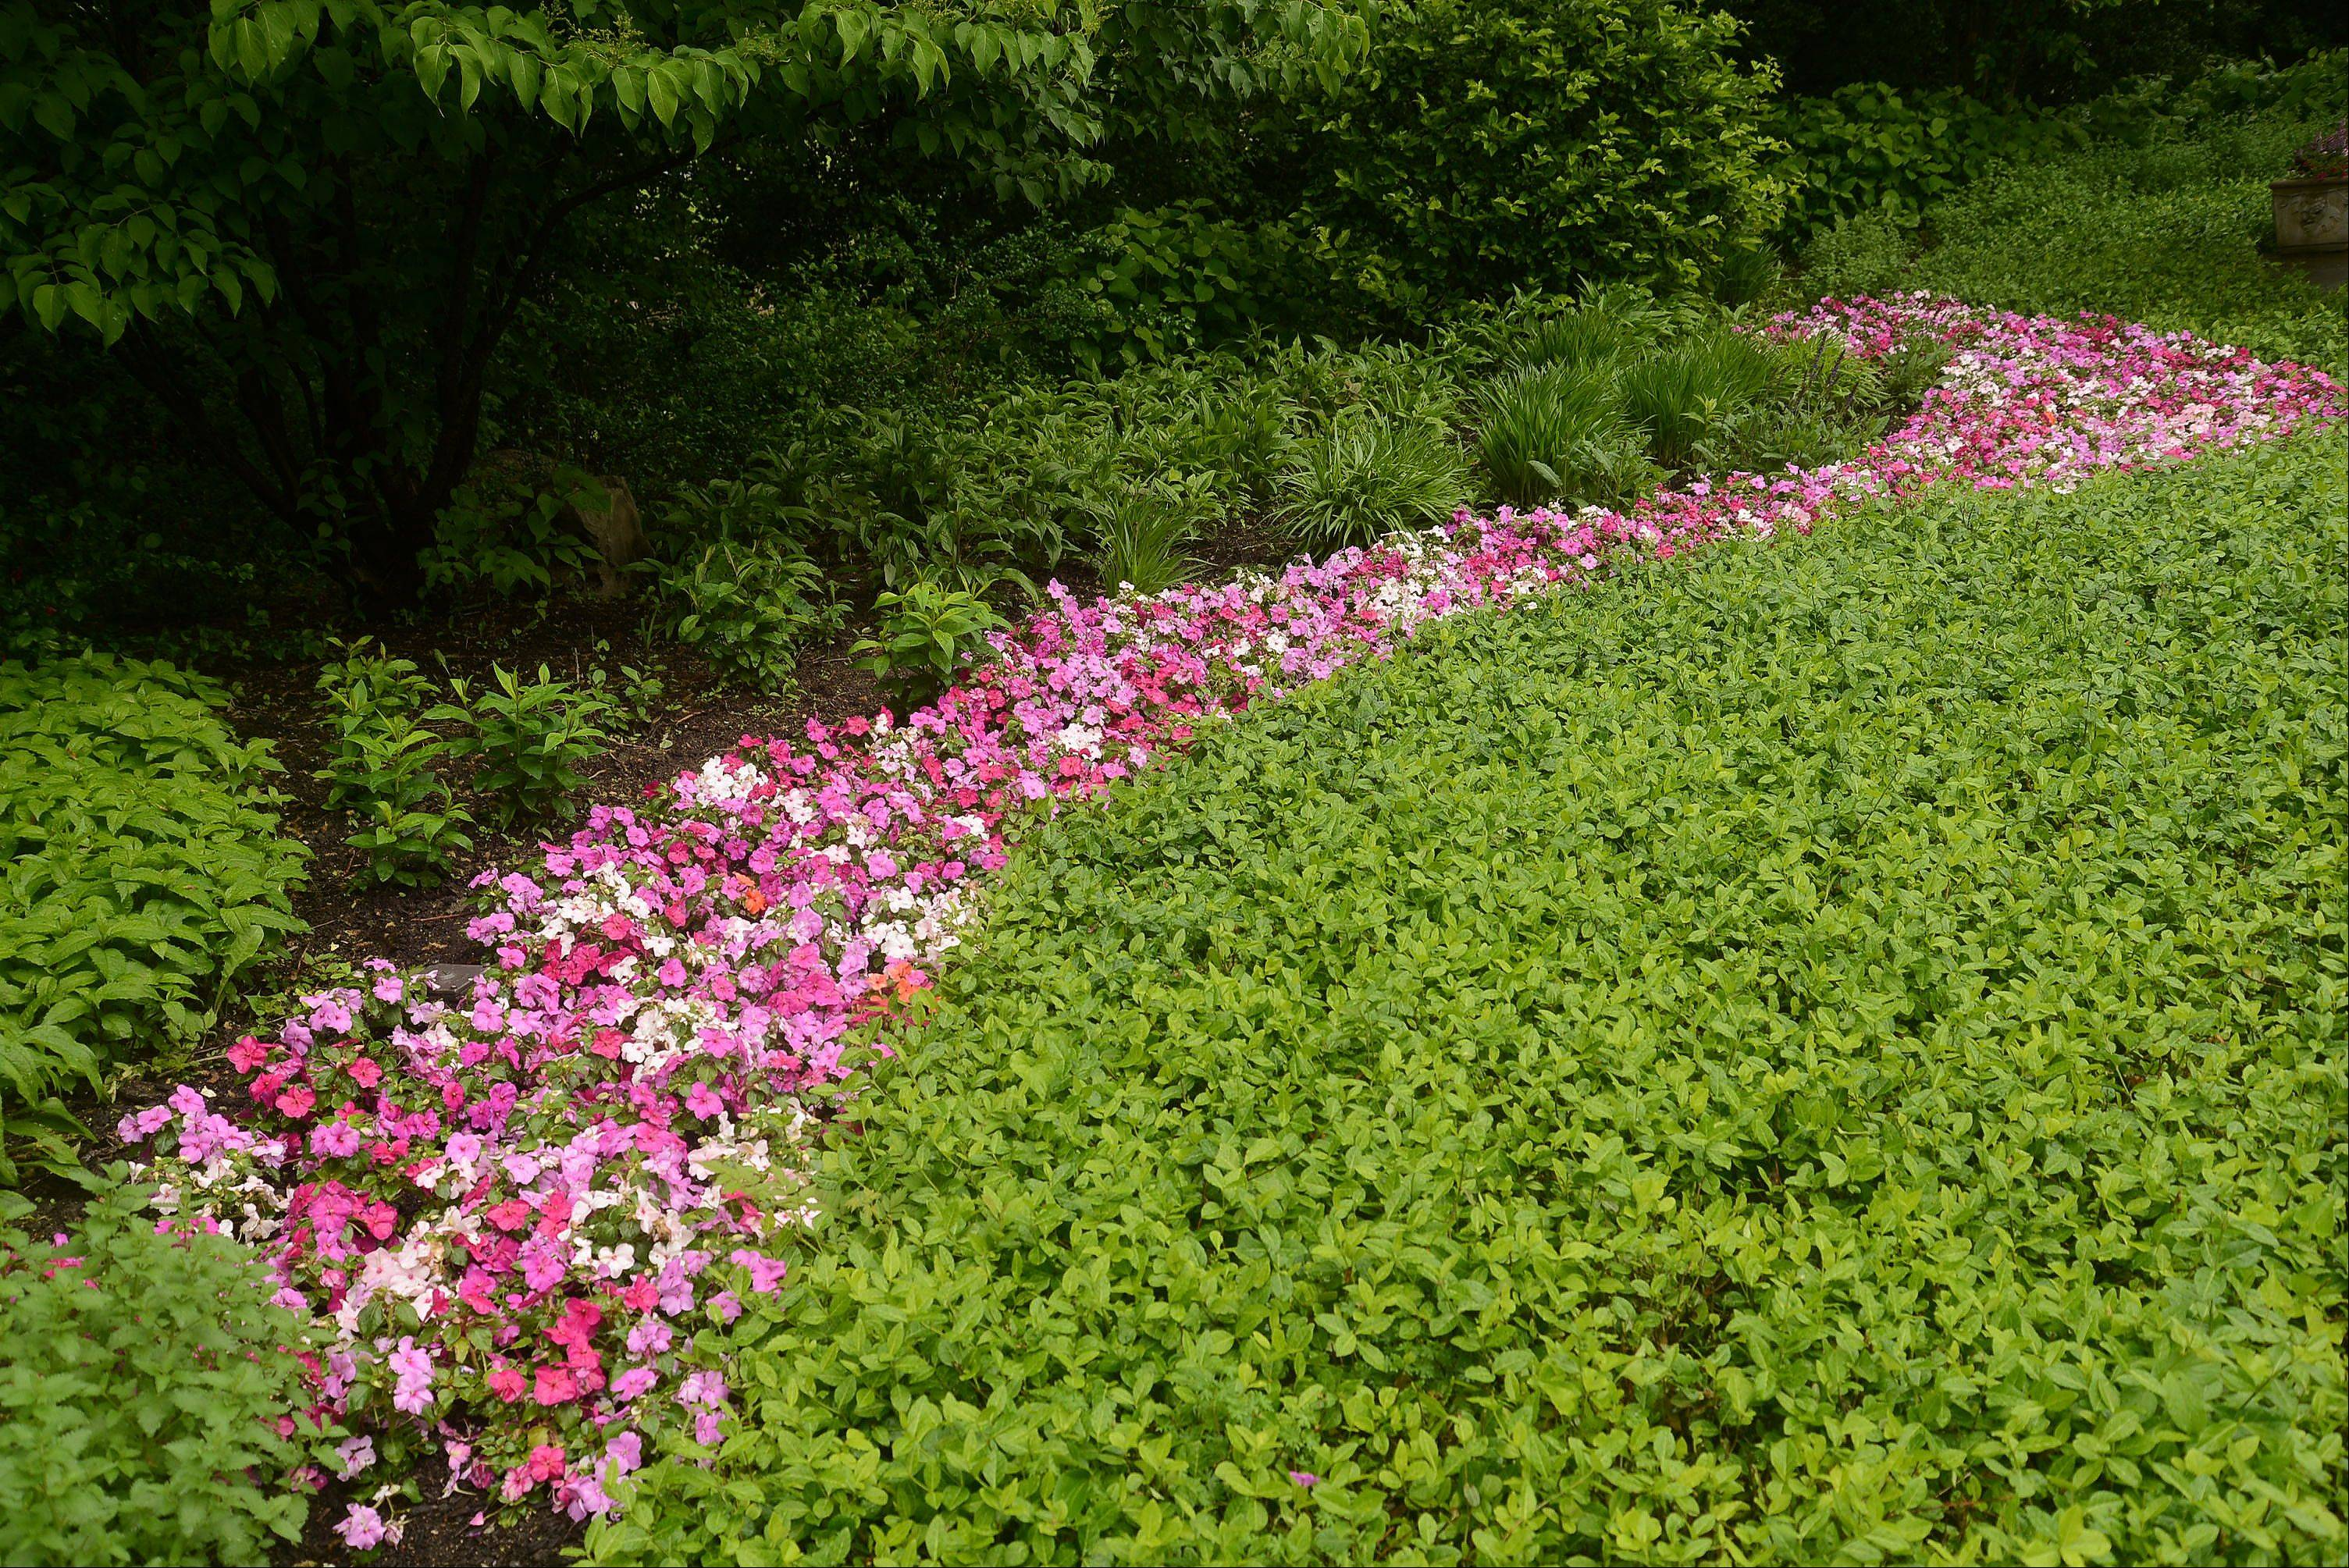 Impatiens provide color in a shaded area of the Barrington Hills estate.